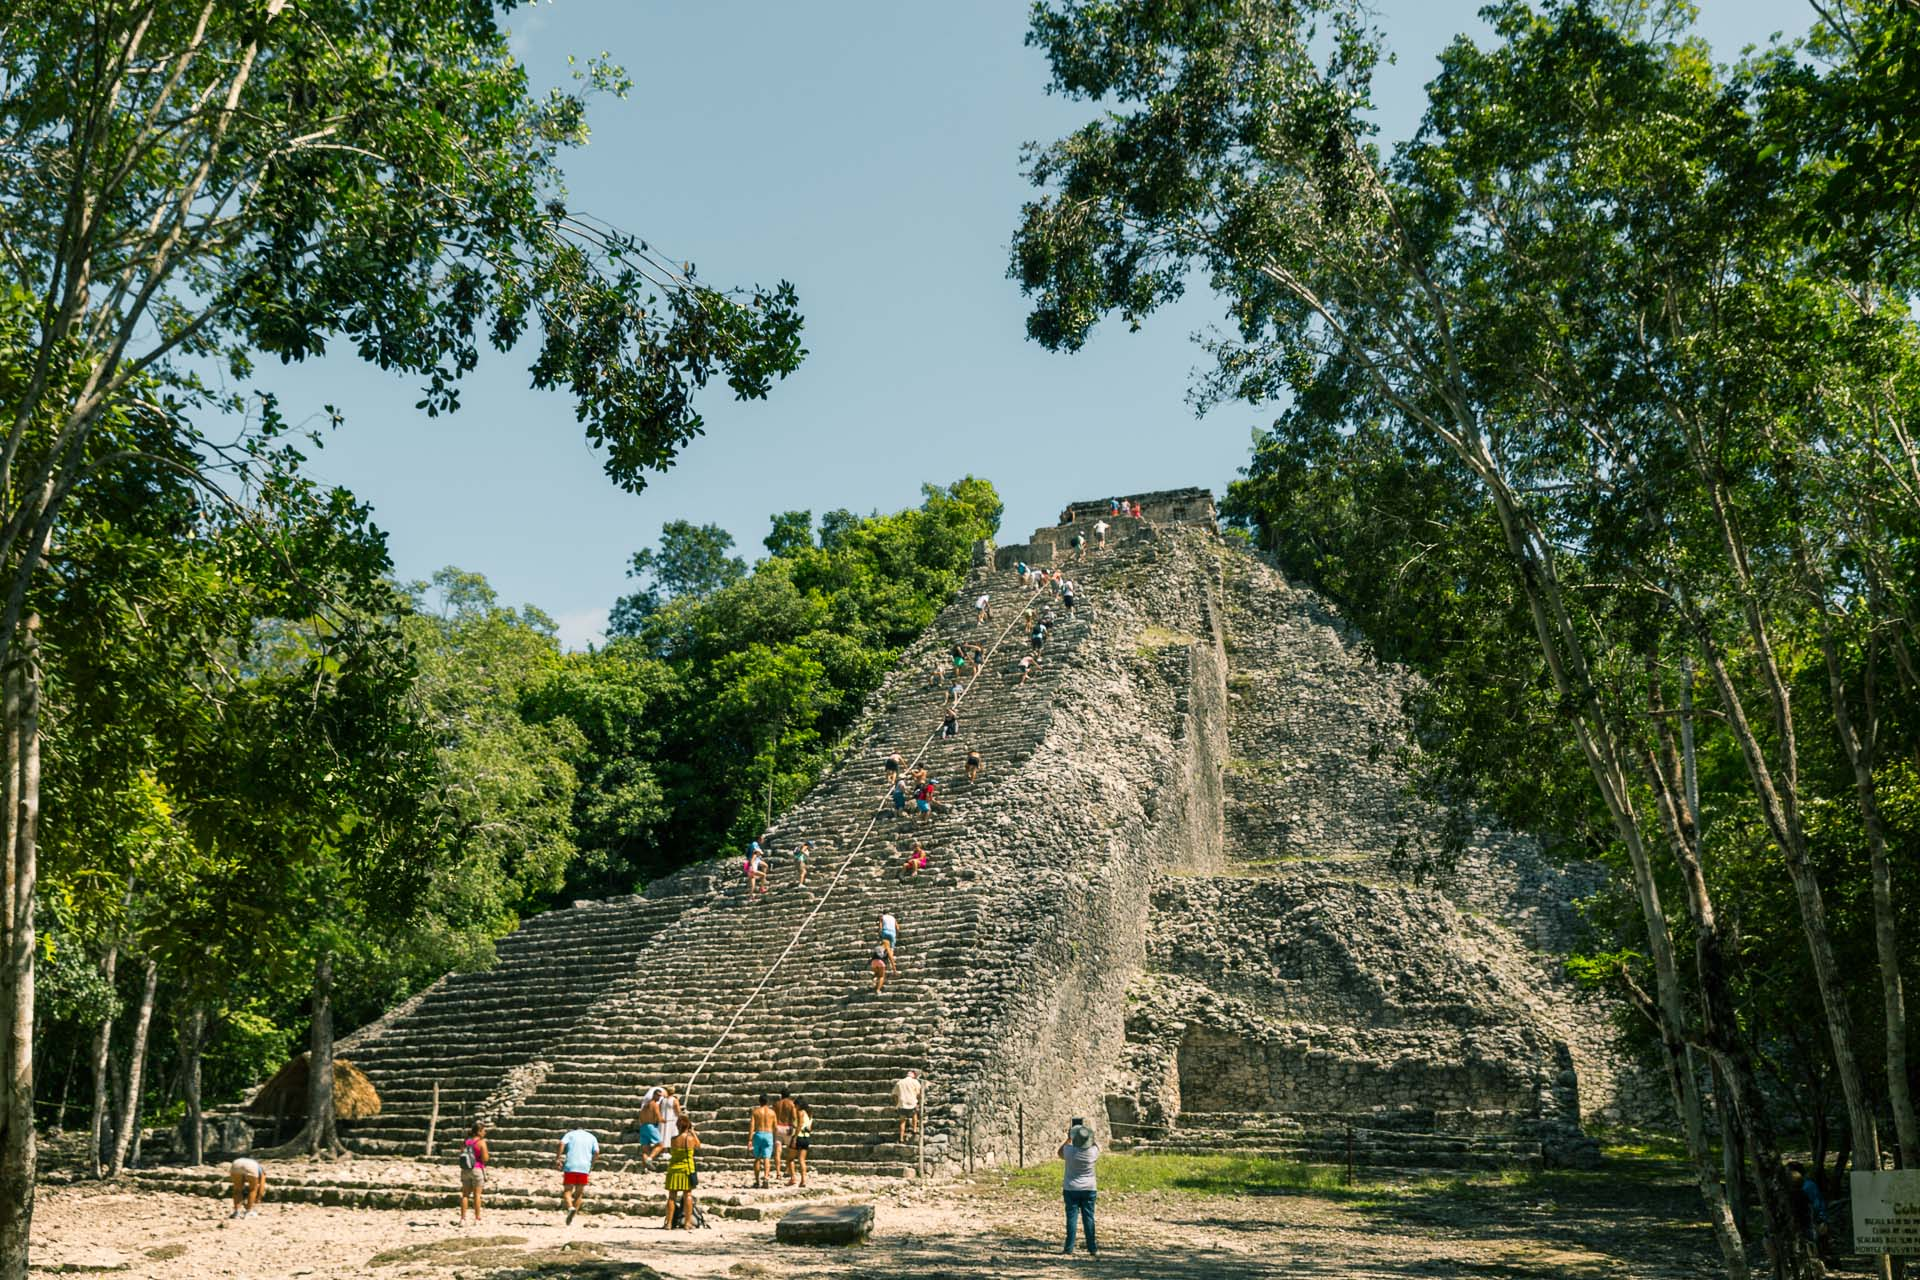 The Ixmoja Pyramid in Cobà. 42 metres tall, towering over the thick jungle.